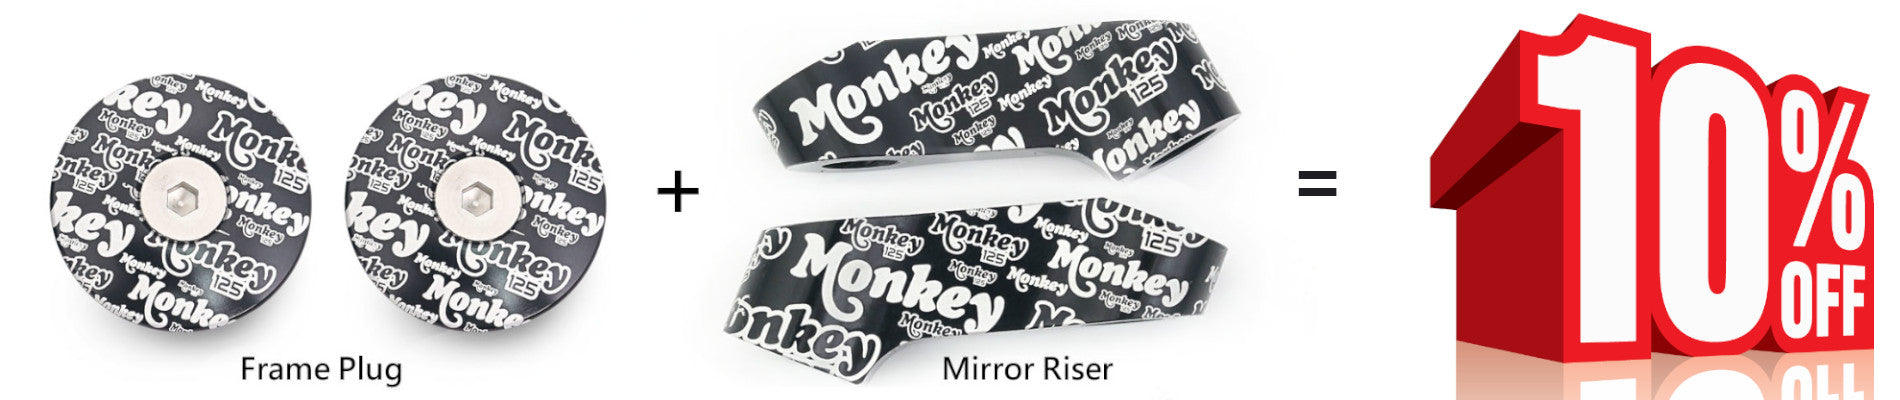 Honda Monkey 125 Graffiti logo engraved frame plugs and mirror extender set